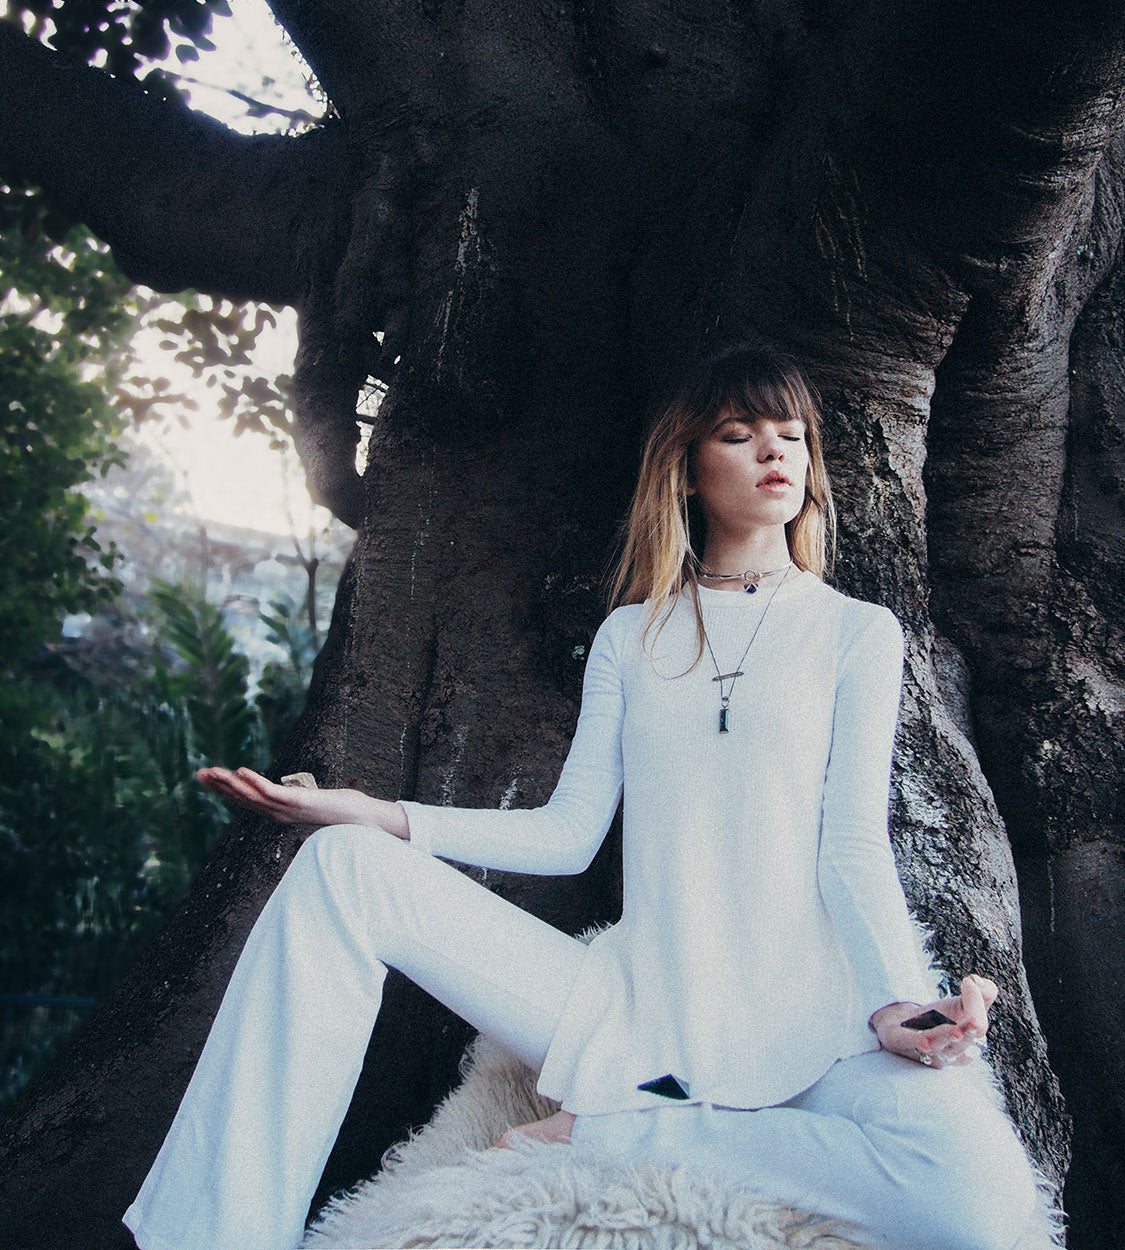 Ondine-maniamania-how-to-meditate-with-crystals-commune-modern-mystic-2